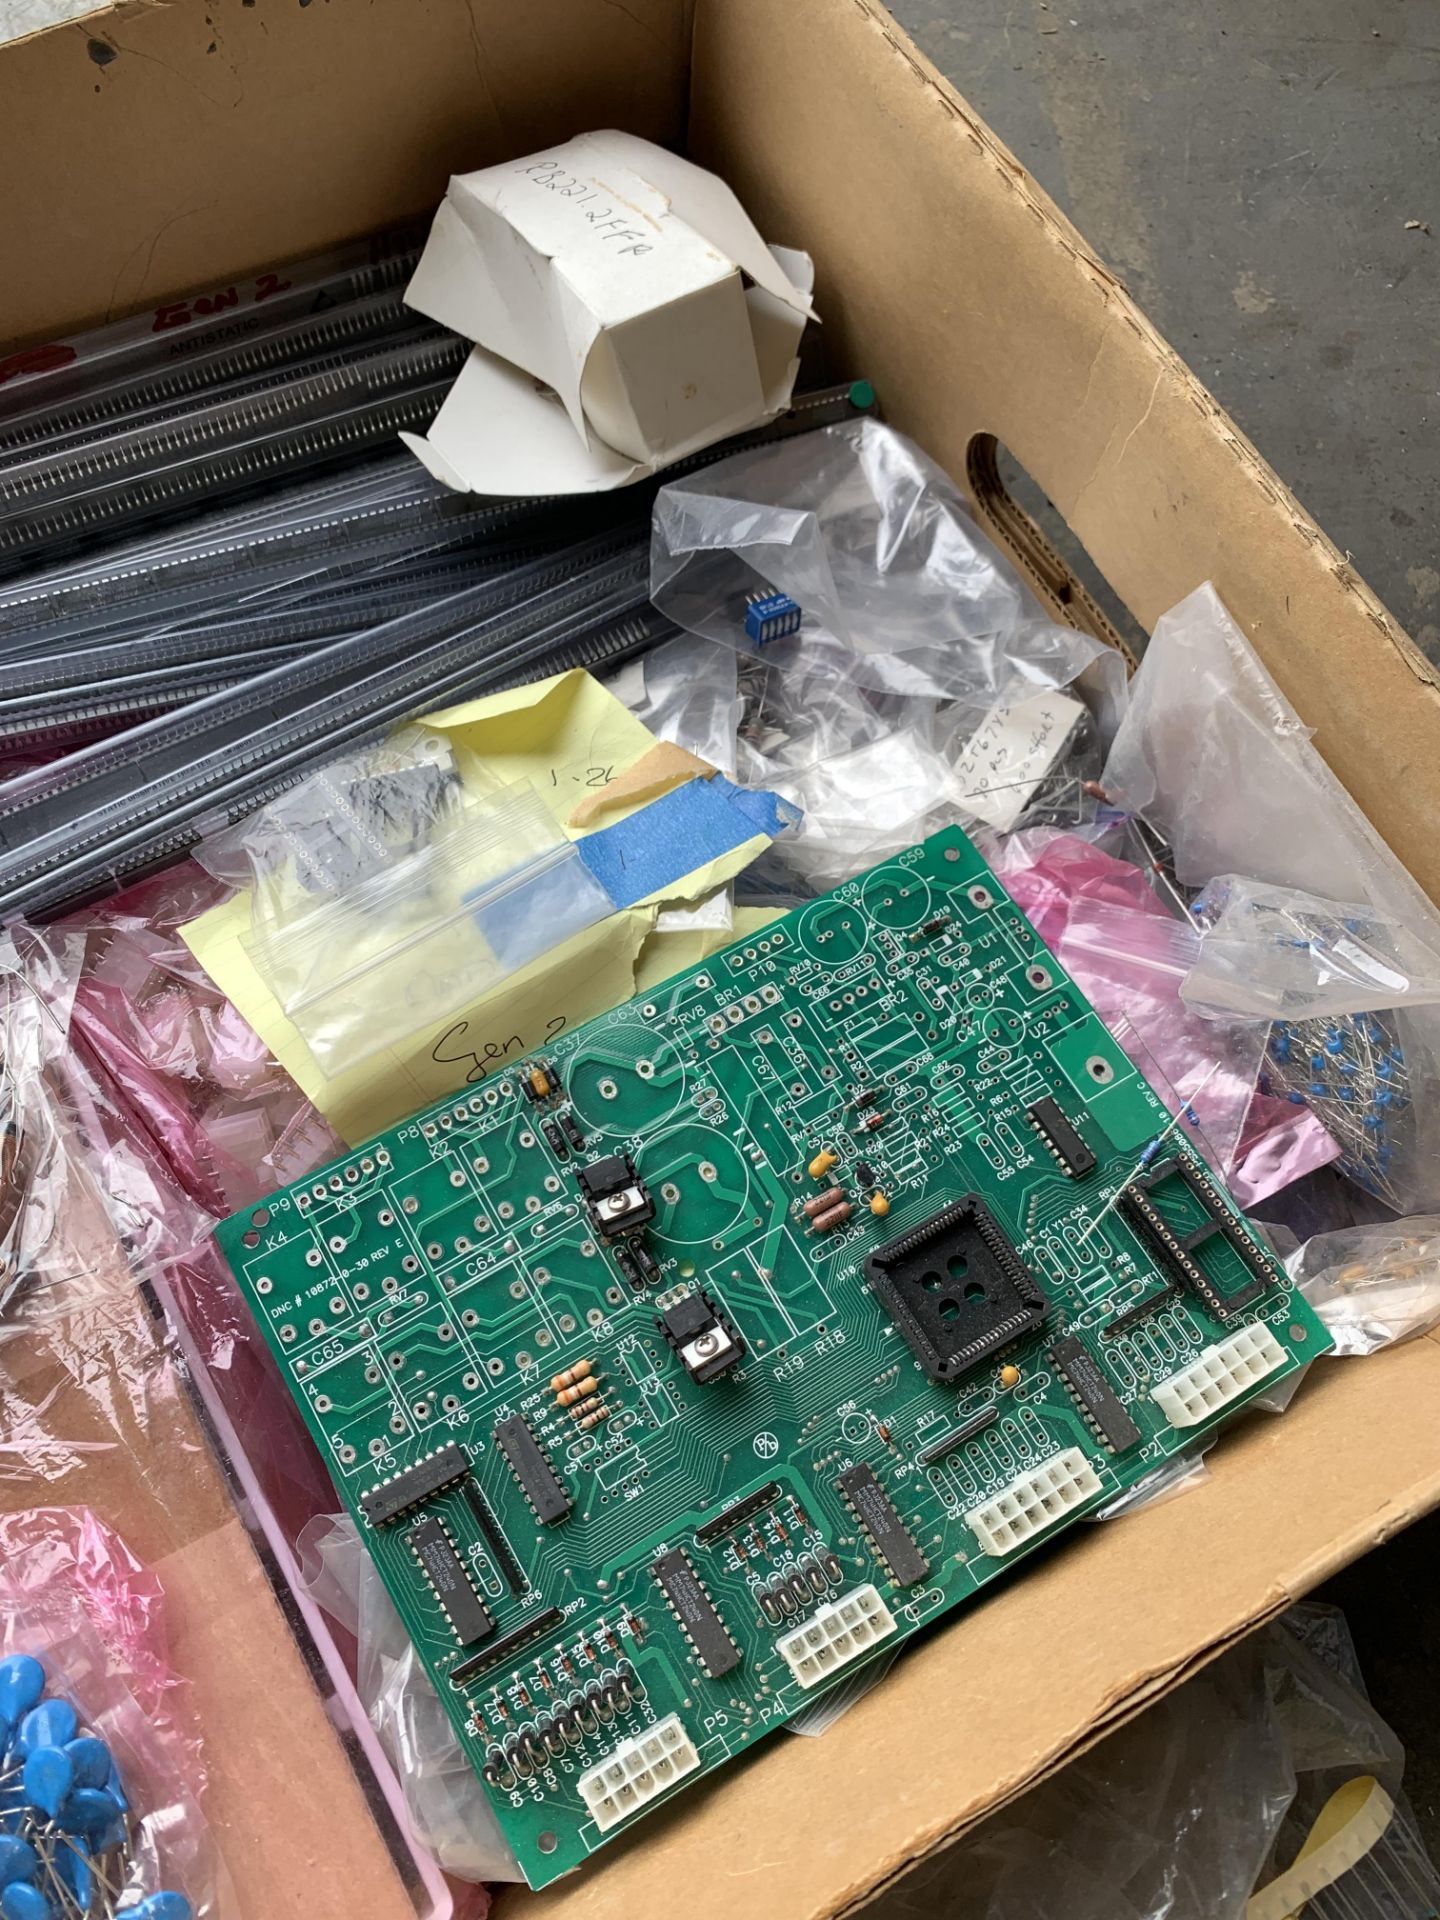 Lot 209 - Mixed lot of Boards, Components and Semi Conductors for Boards, Ship from or pick up in Los Angeles